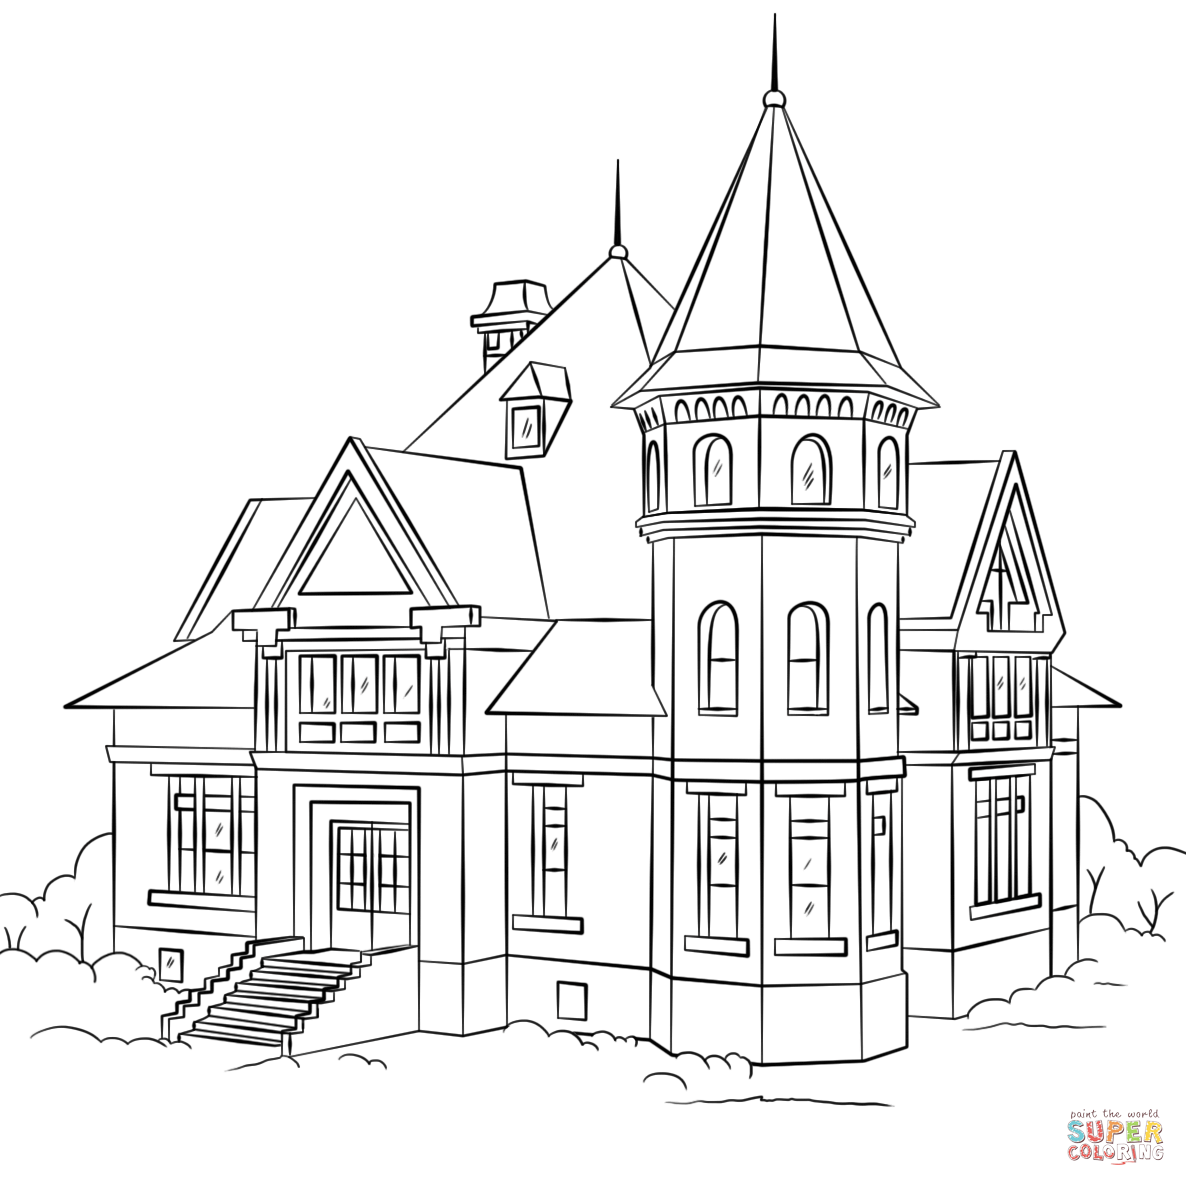 Download or print this amazing coloring page Victorian